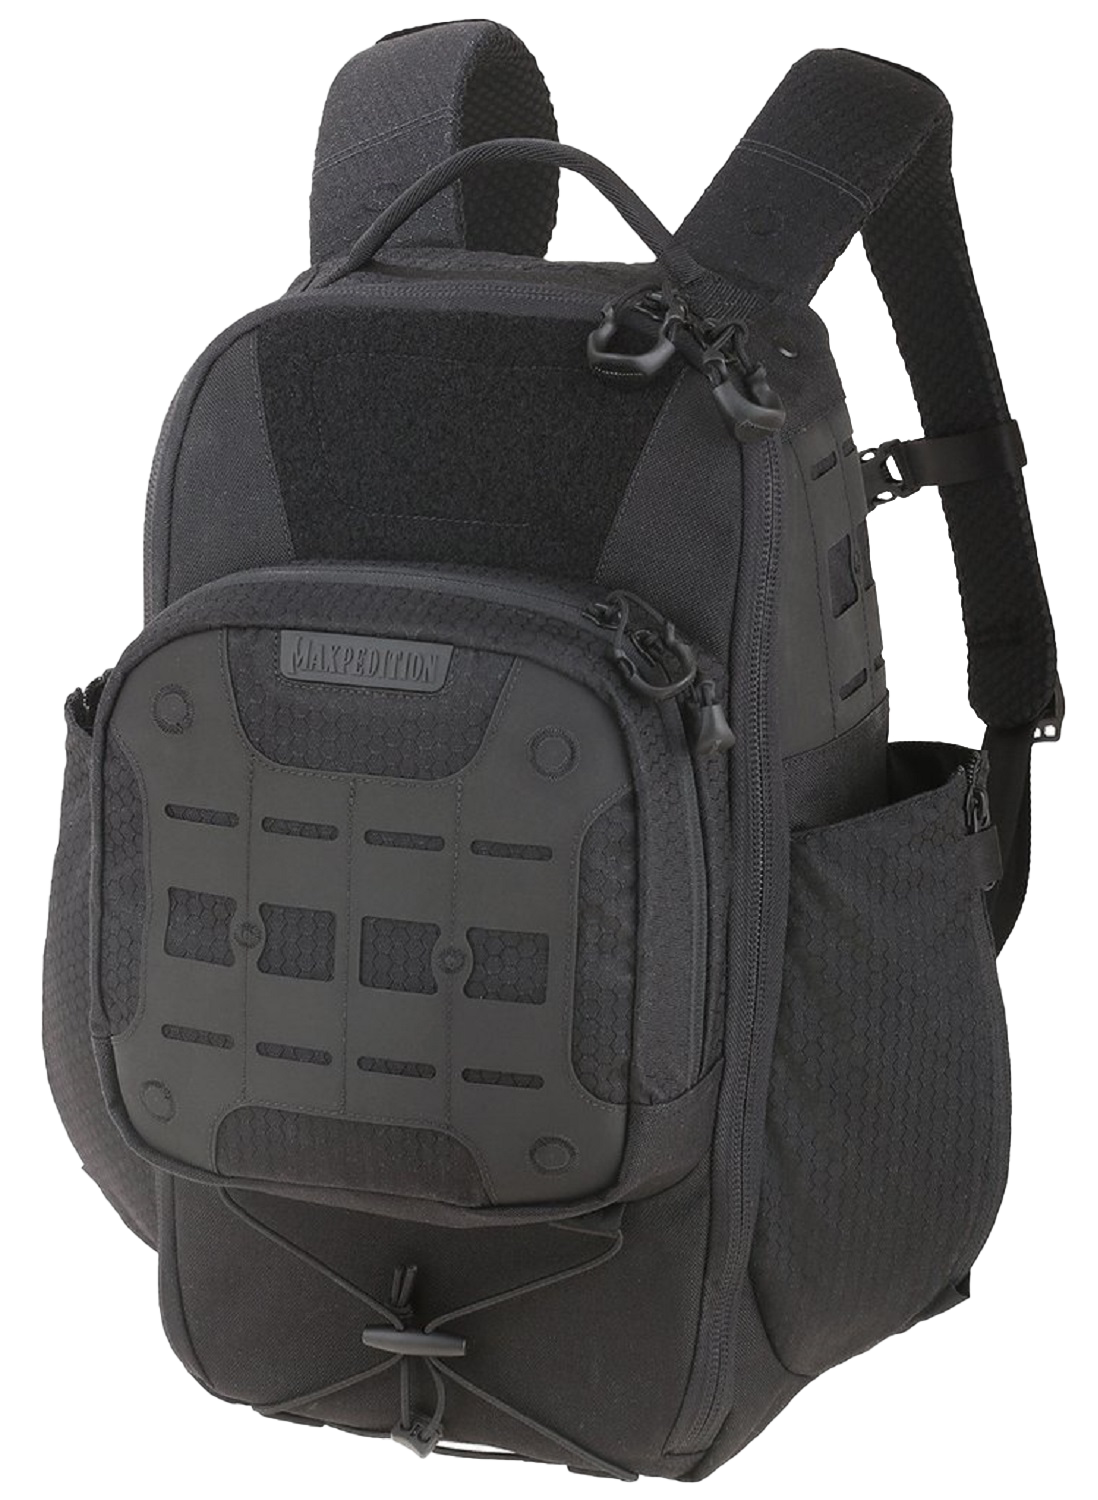 Daypack | Hiking Day Pack 17L Everyday  Backpack Maxpedition Lithvore